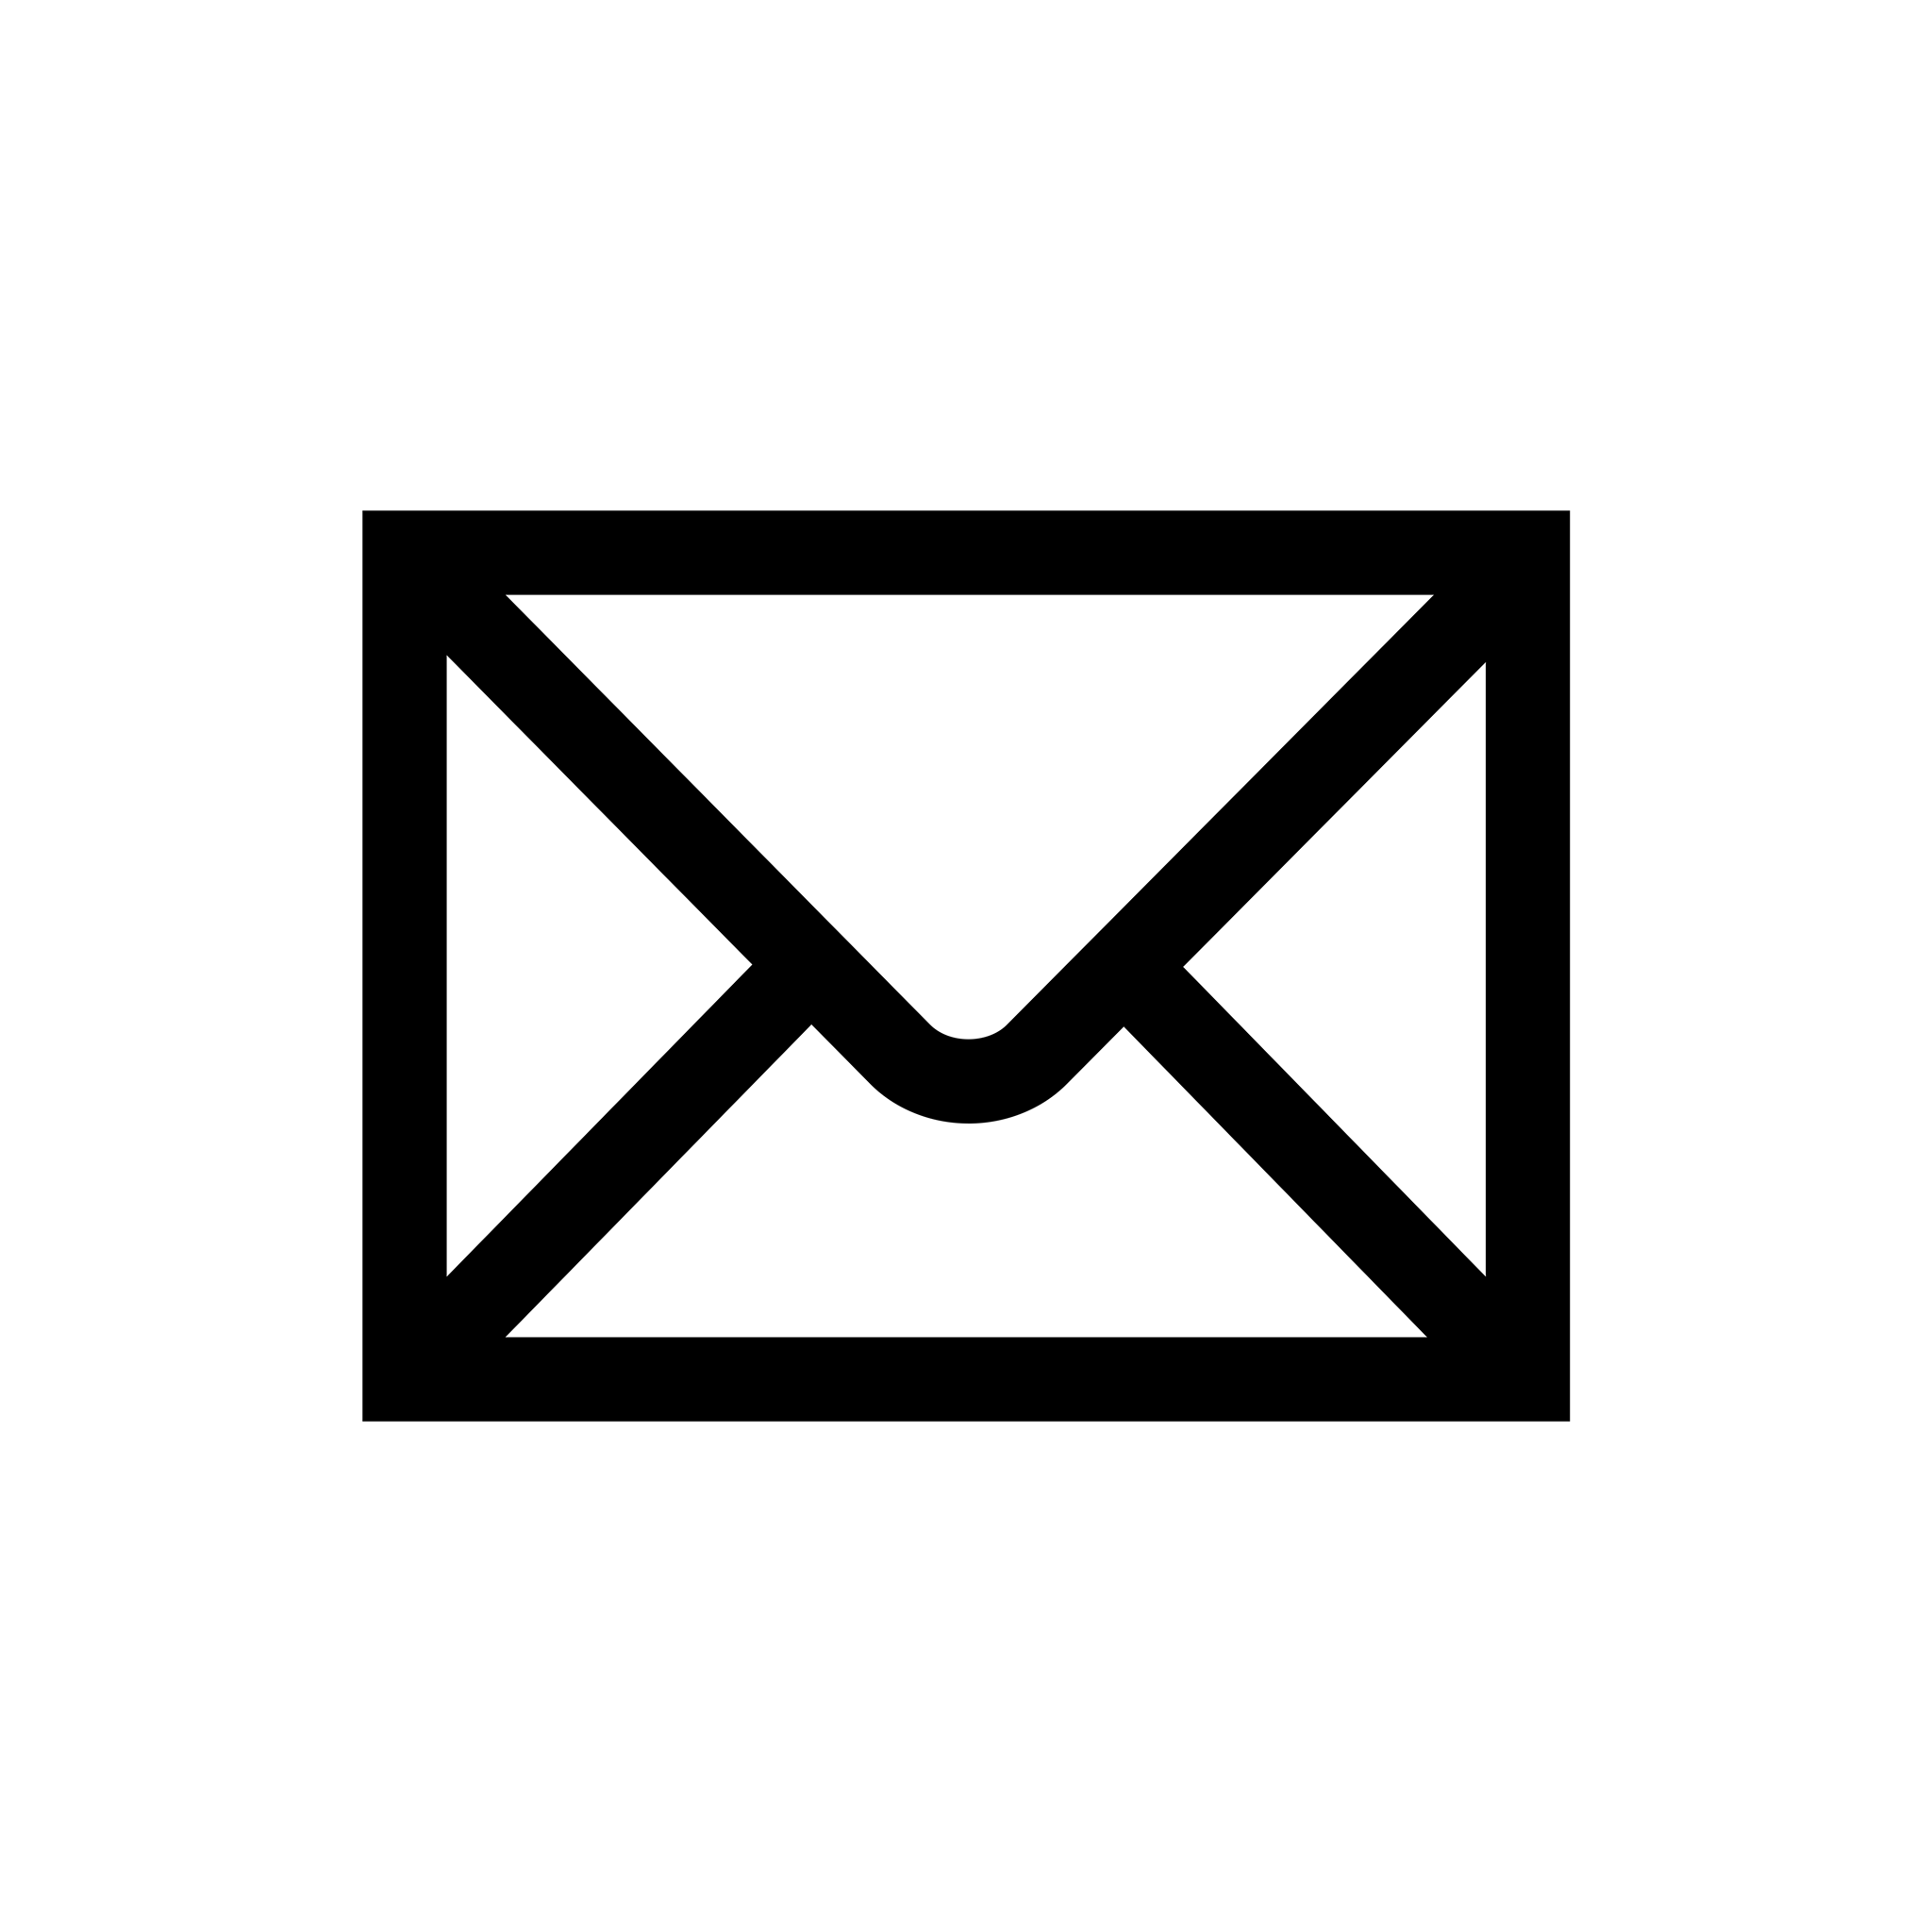 Email logo of a closed envelope